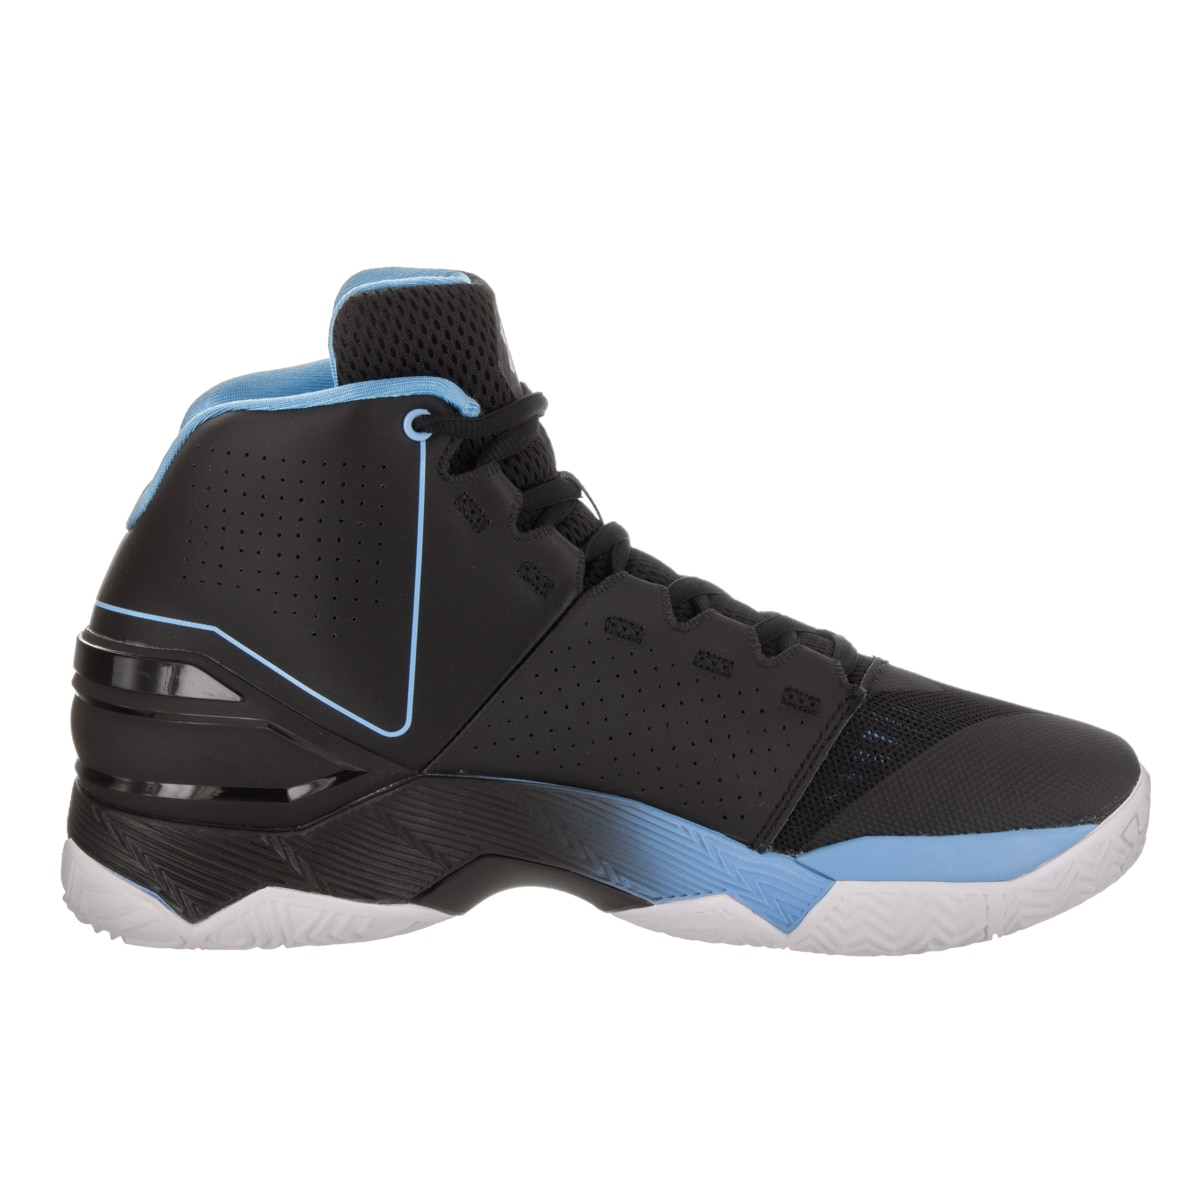 97d63d9af577 Shop Under Armour Men s Longshot Black Synthetic Leather Basketball Shoe - Free  Shipping Today - Overstock - 14427976